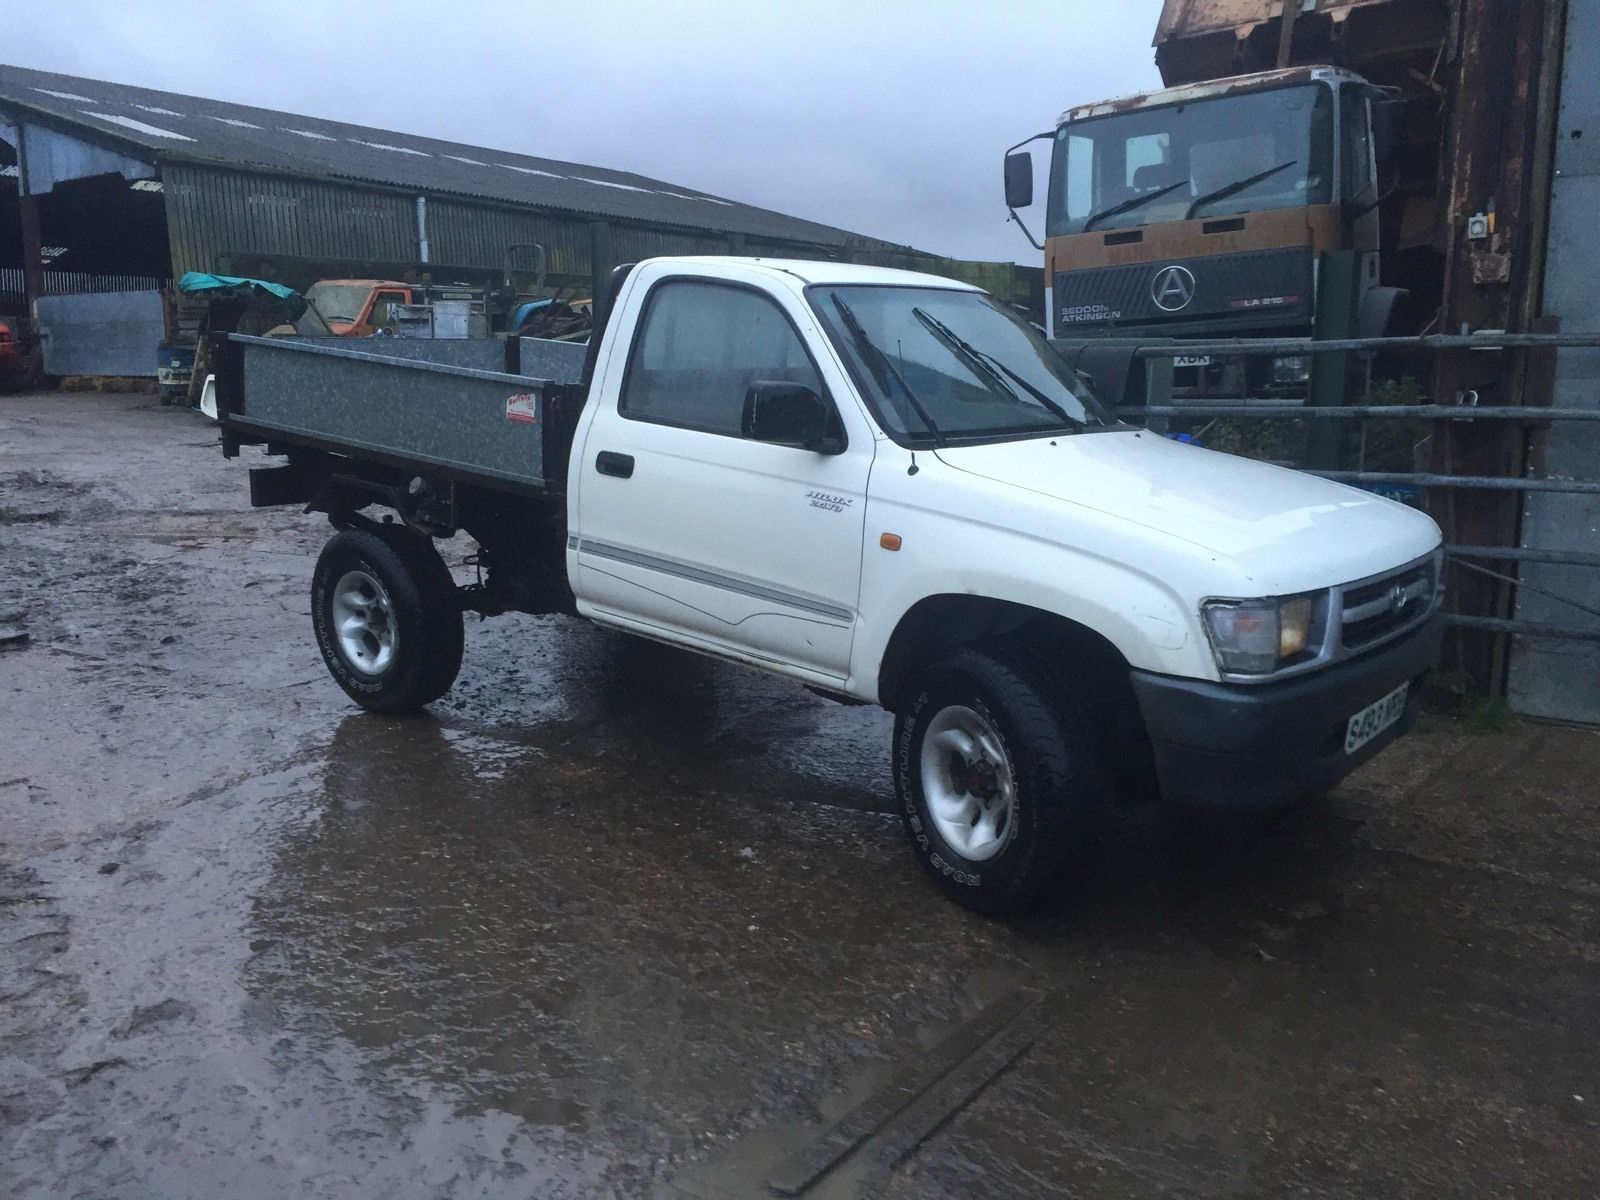 Toyota hilux pickup not defender off road 4x4 tray back